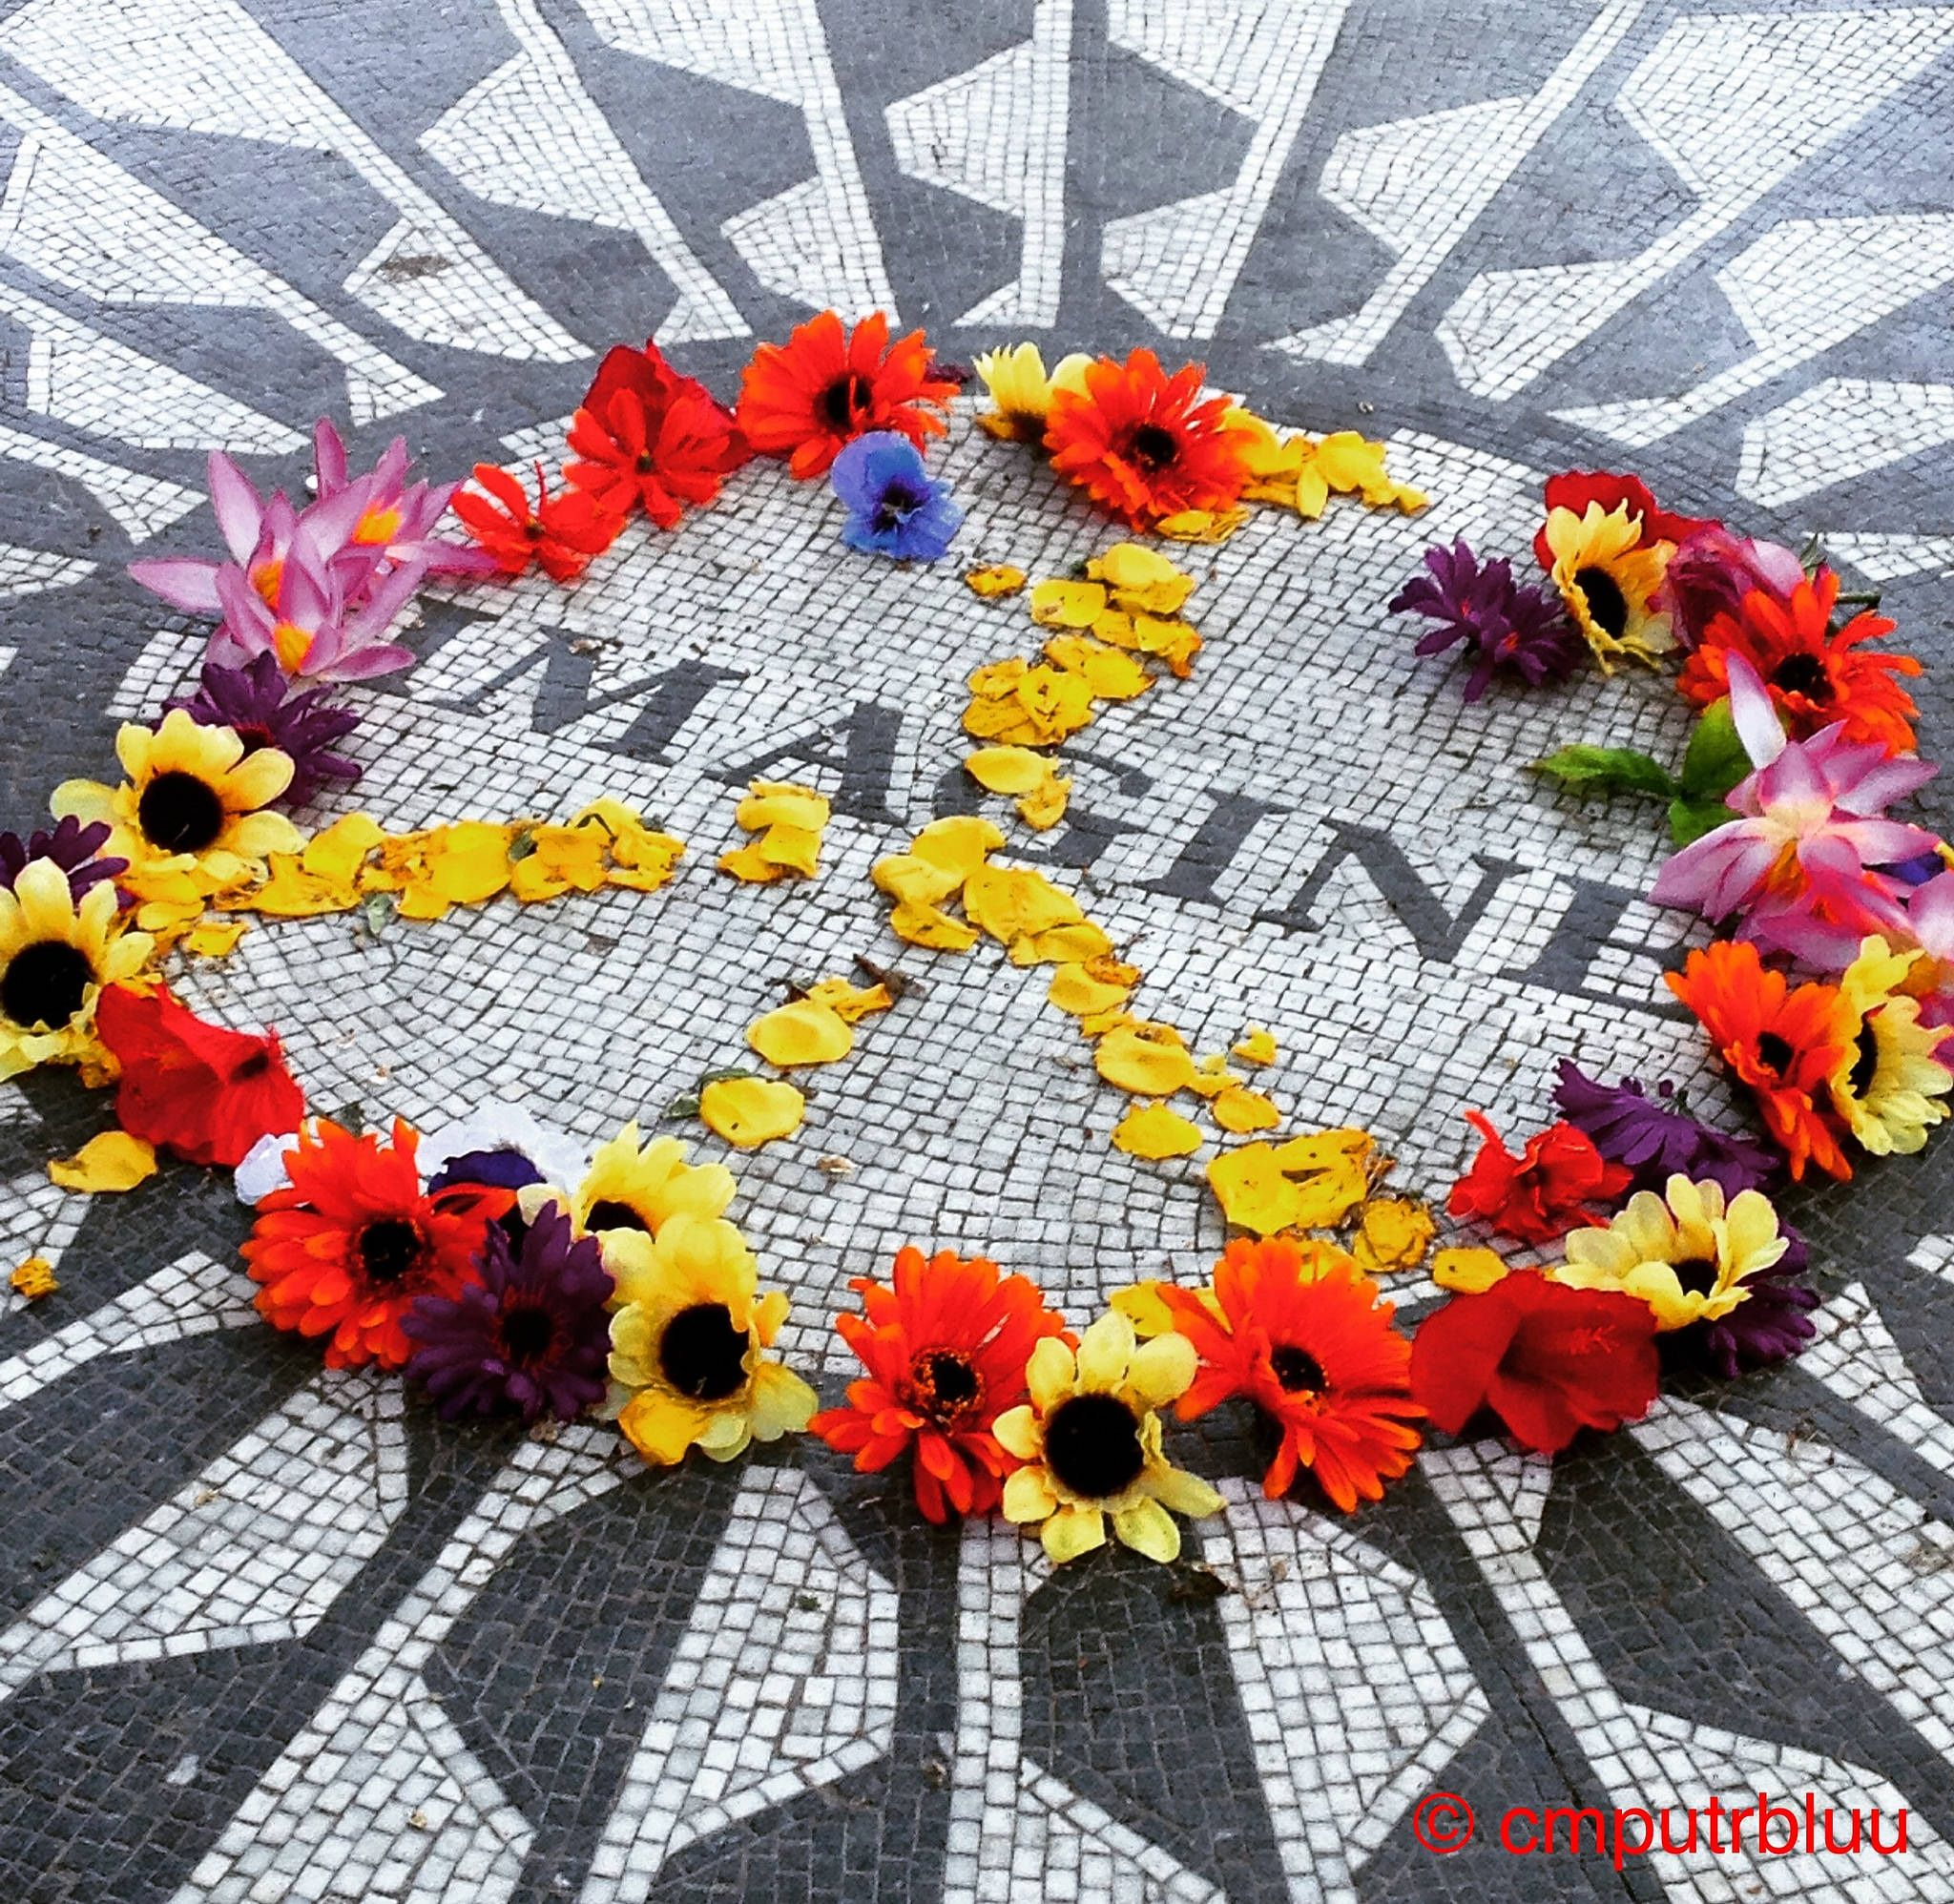 You May Say I'm a Dreamer | Strawberry Fields / Central Park |